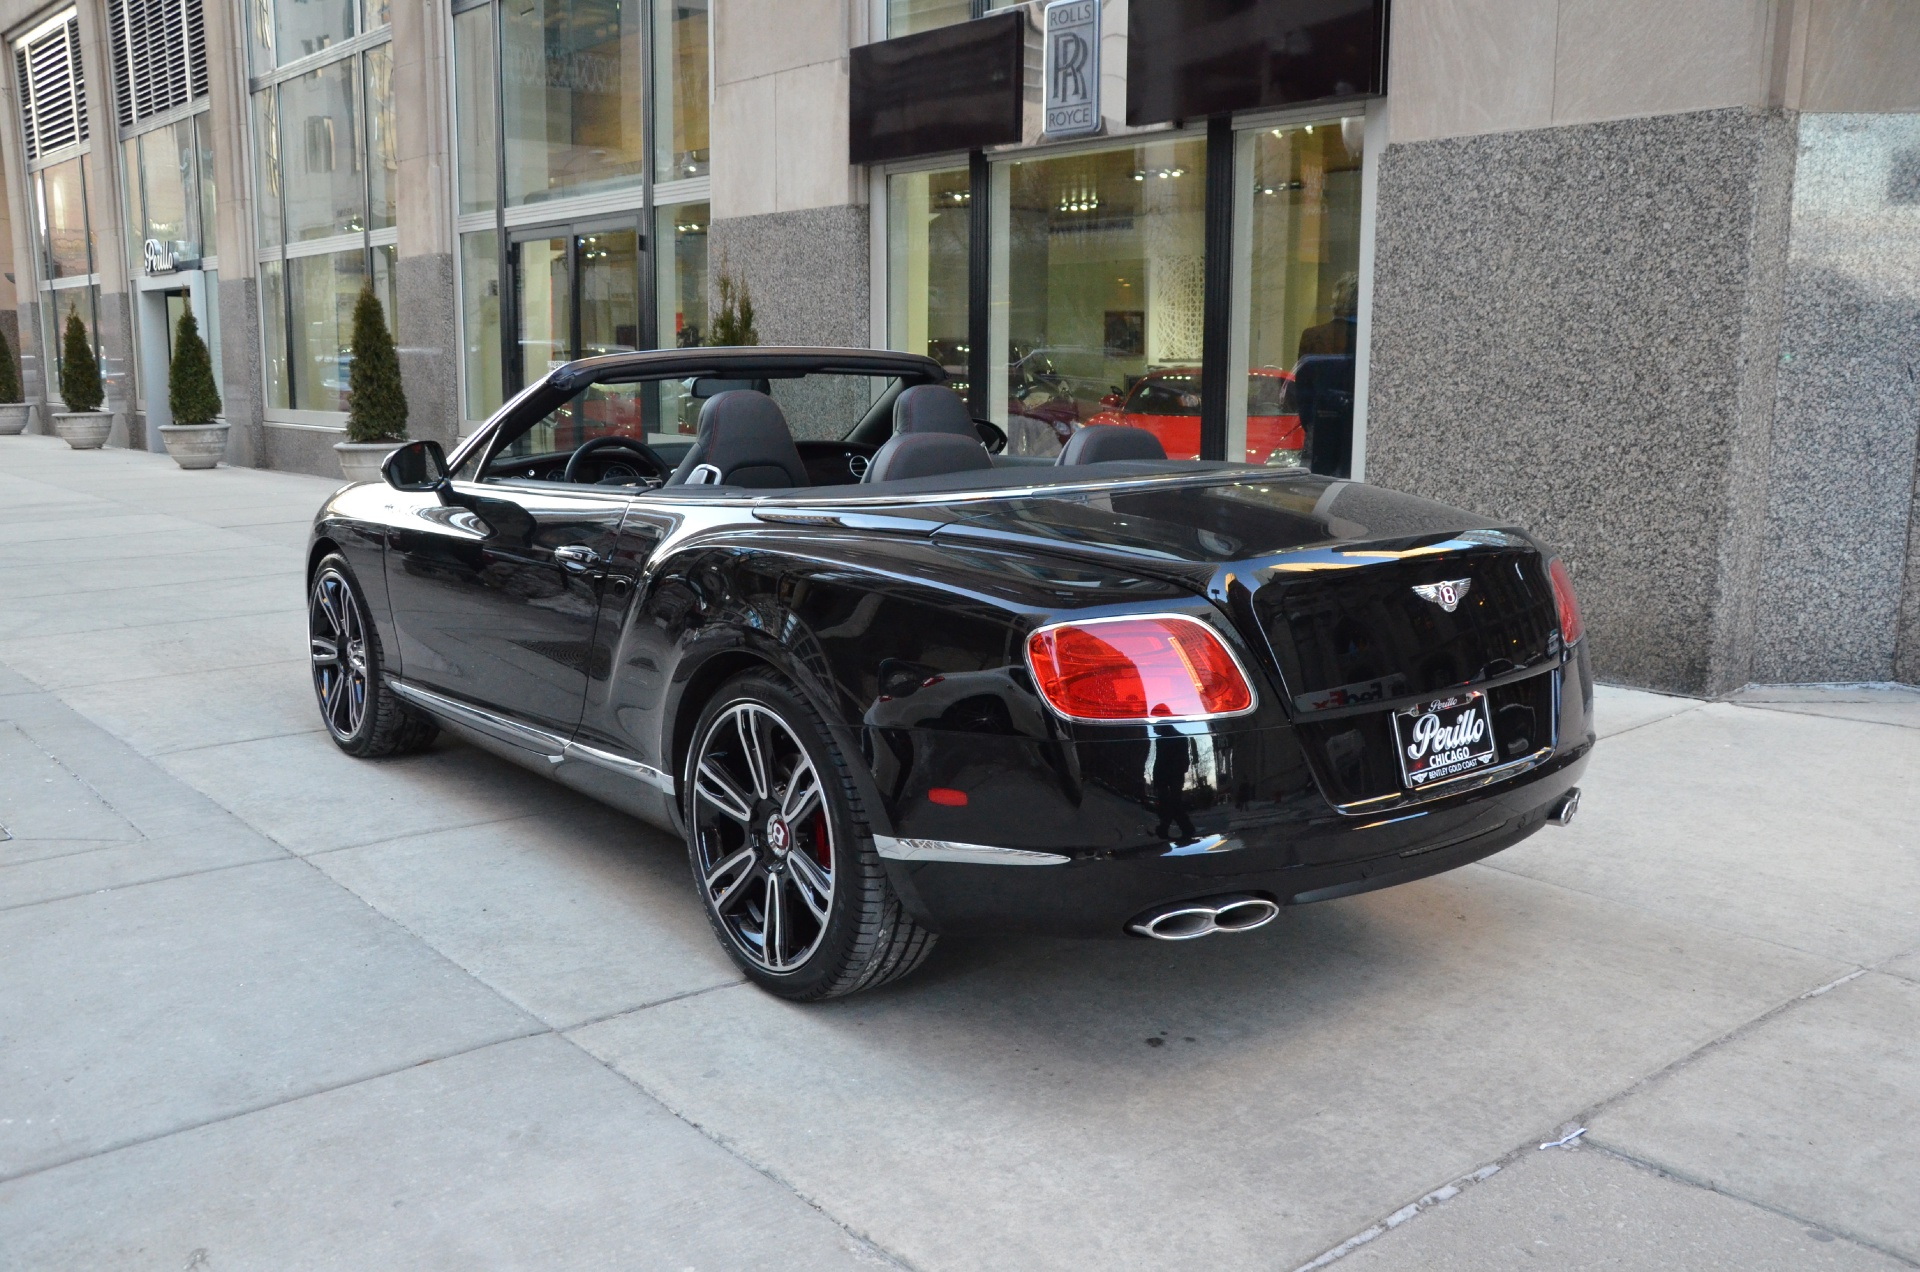 2014 Bentley Continental GTC V8 Stock B558 for sale near Chicago